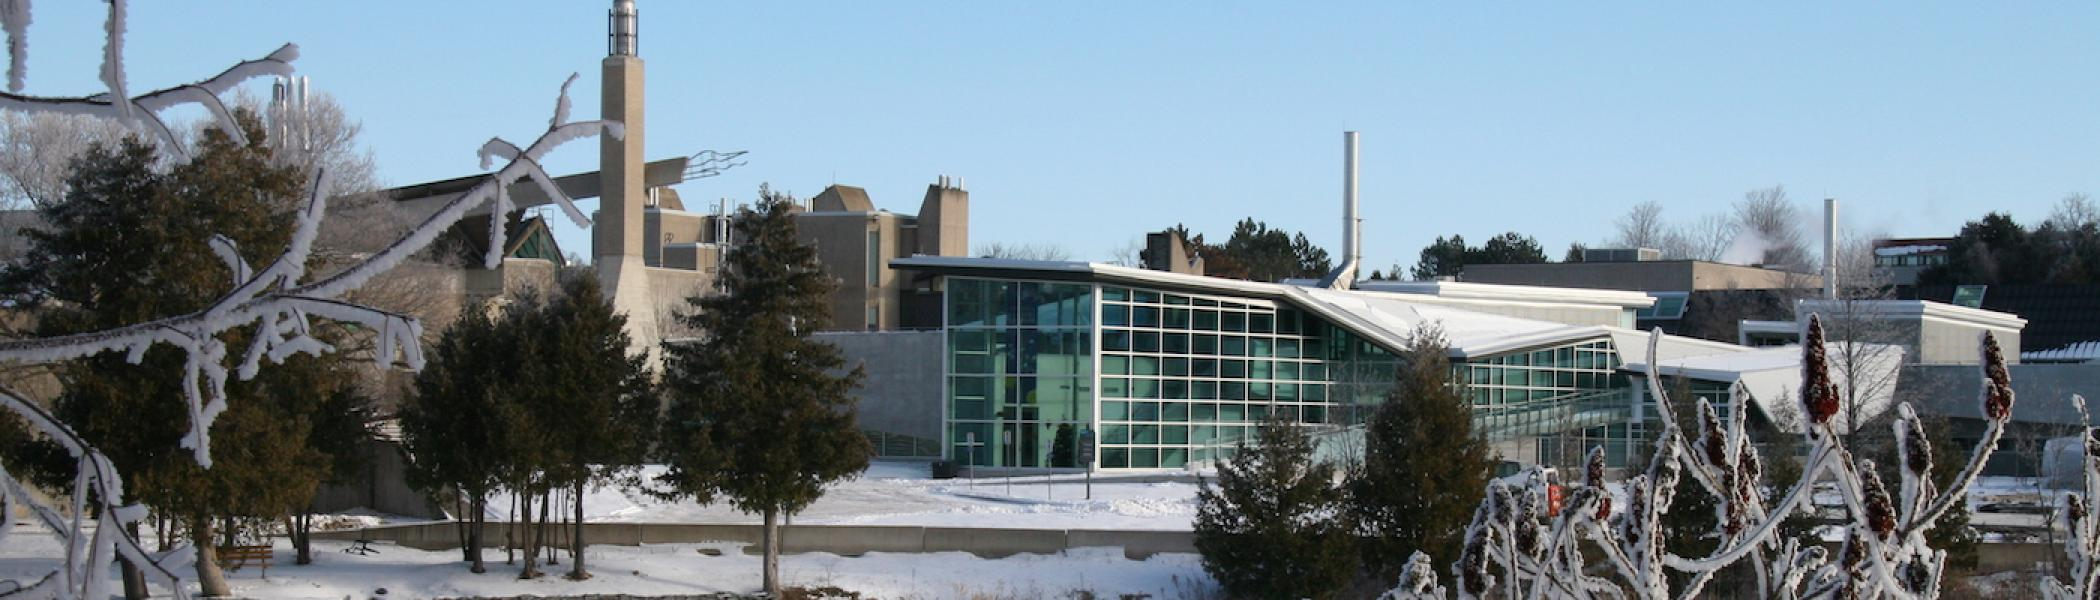 The chemical sciences building at Trent University in the winter time